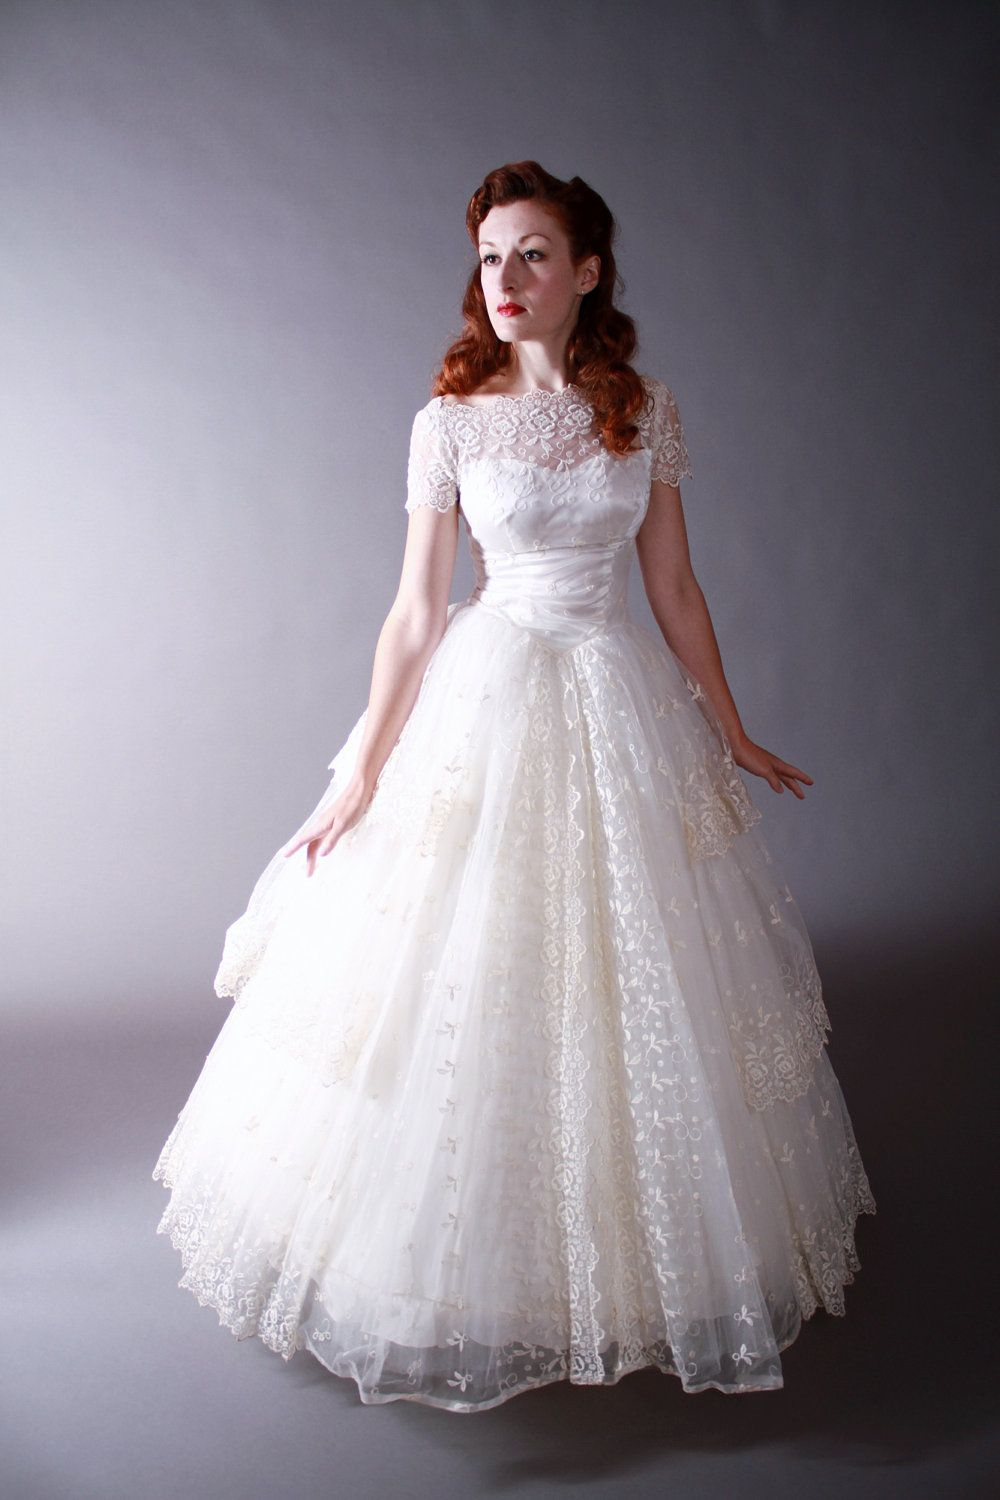 Vintage 1950s Wedding Gown - Amazing Tiered Pale Ivory Tambour Lace ...